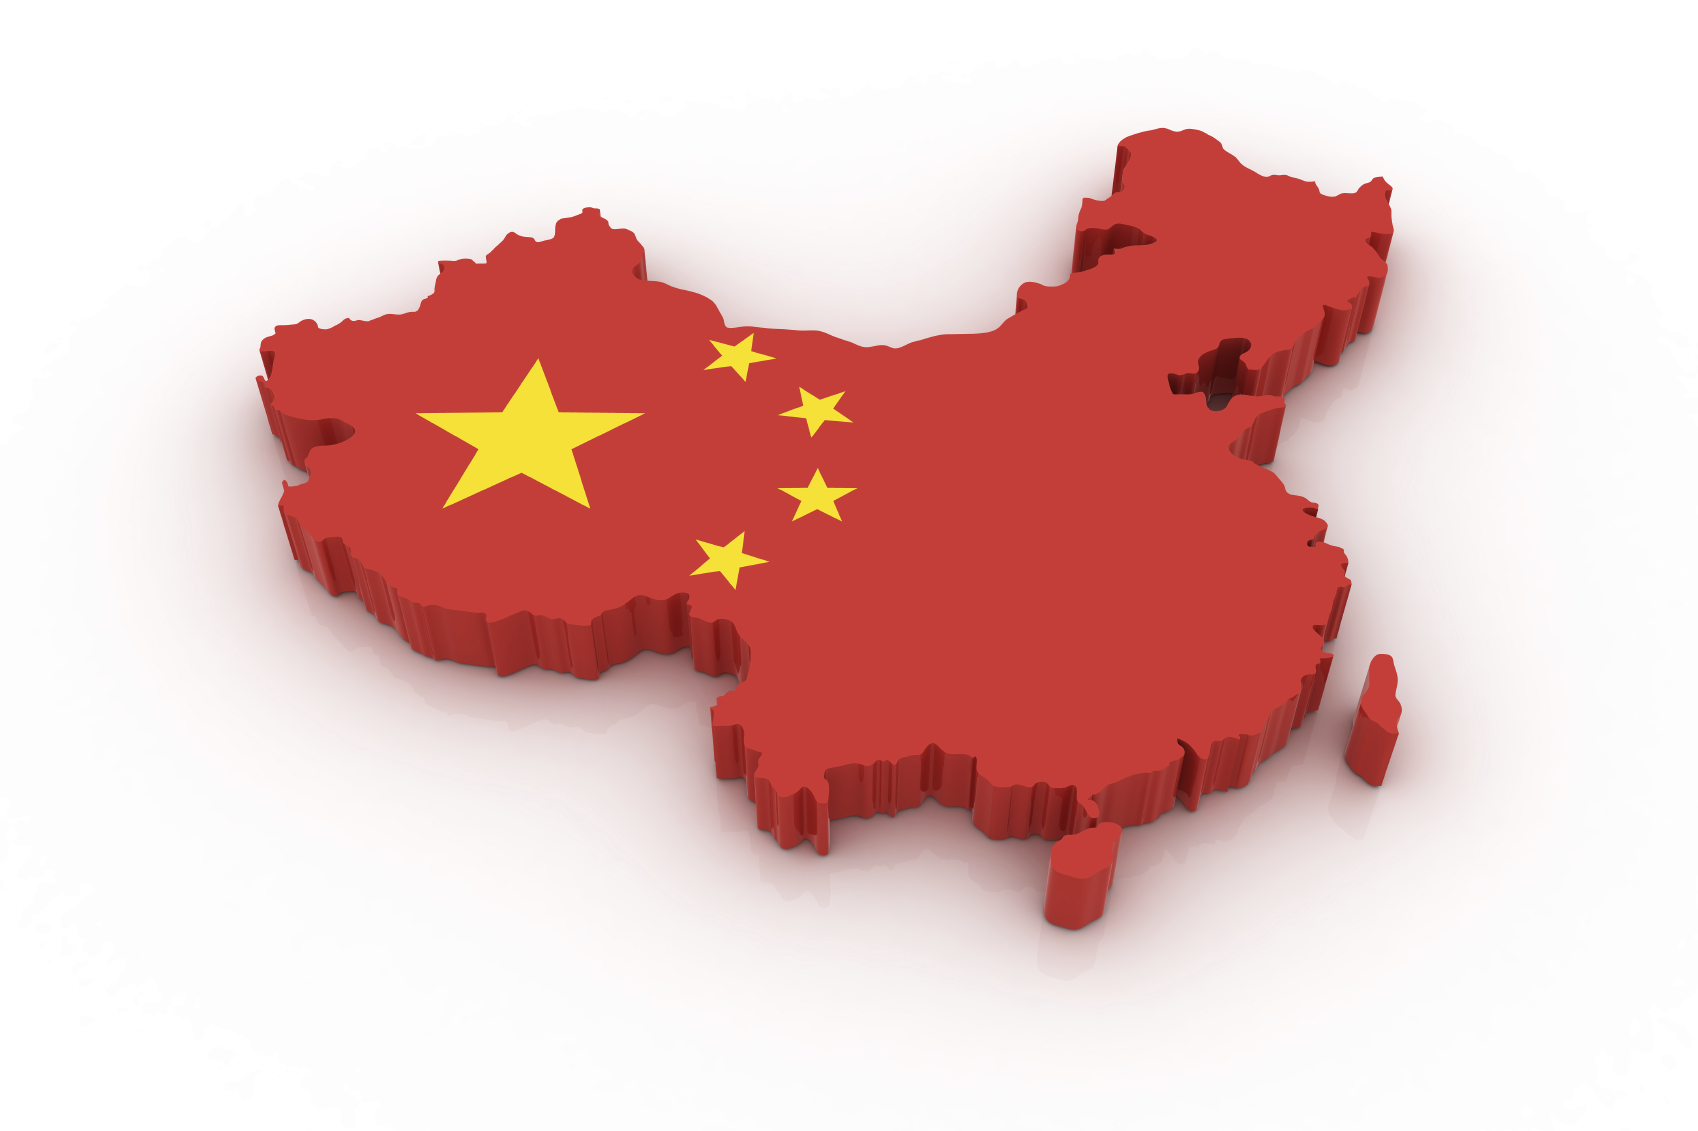 Useful information about Geography of China that you might not know.